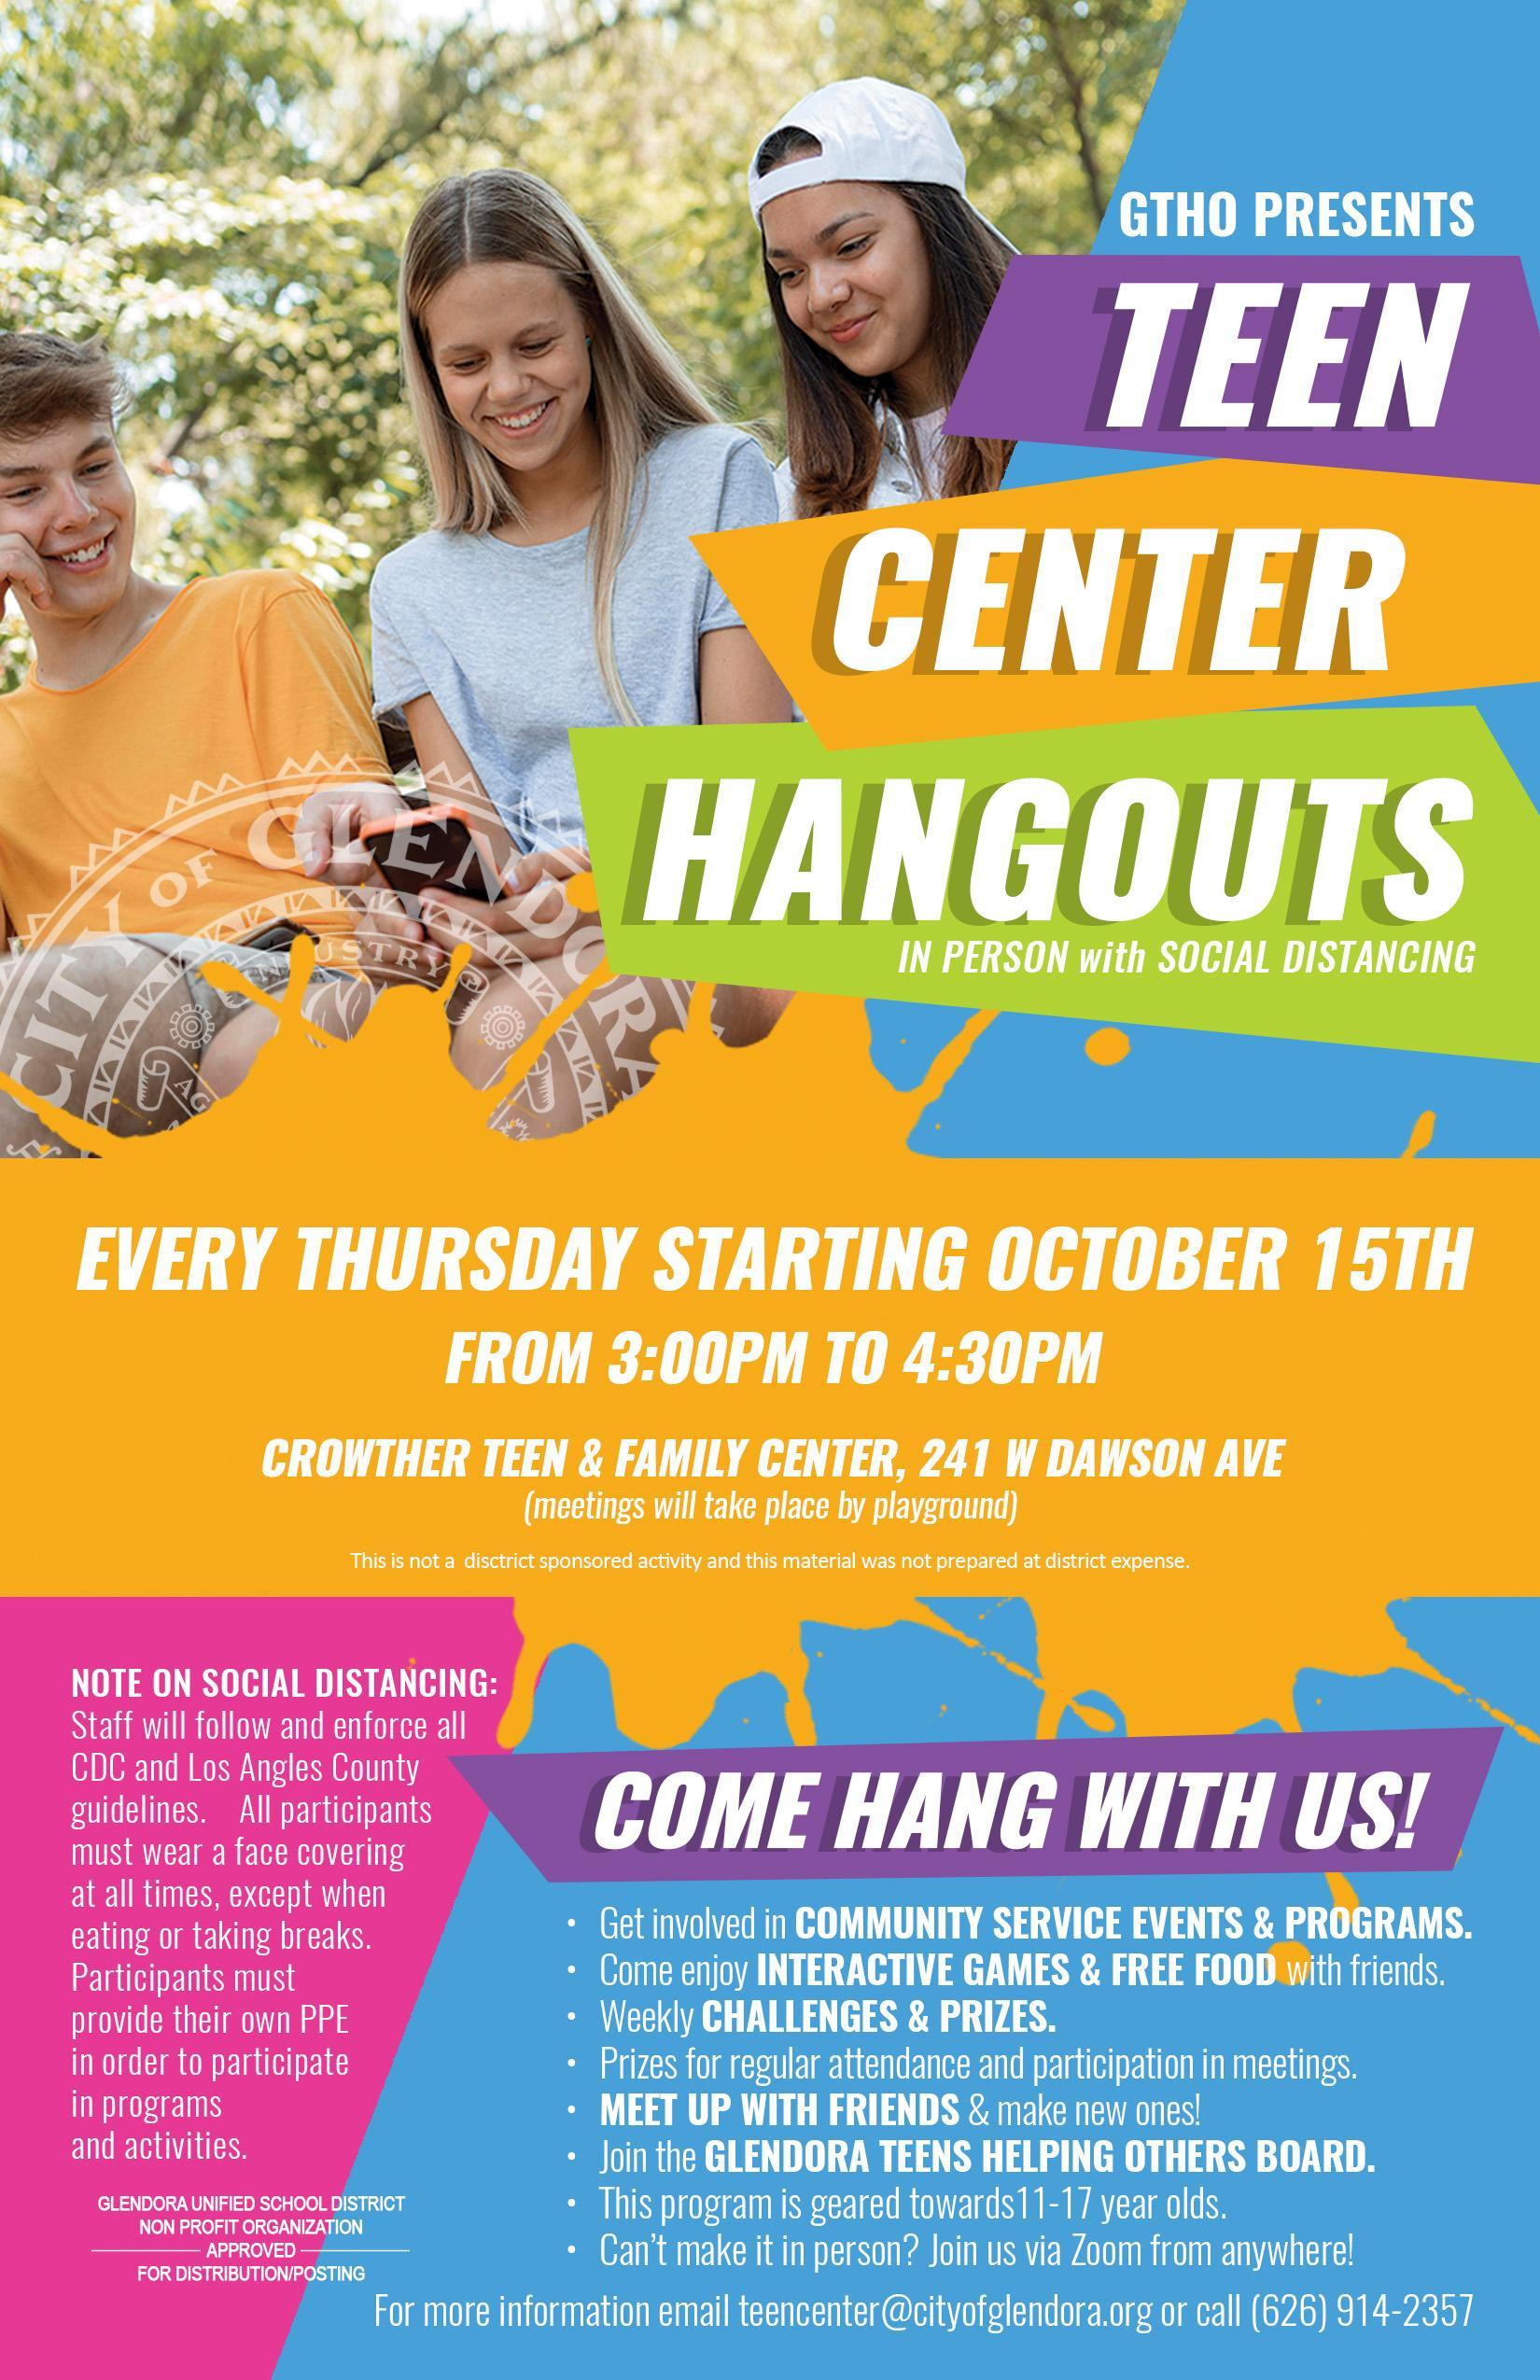 City Teen Center Hangout Flyer